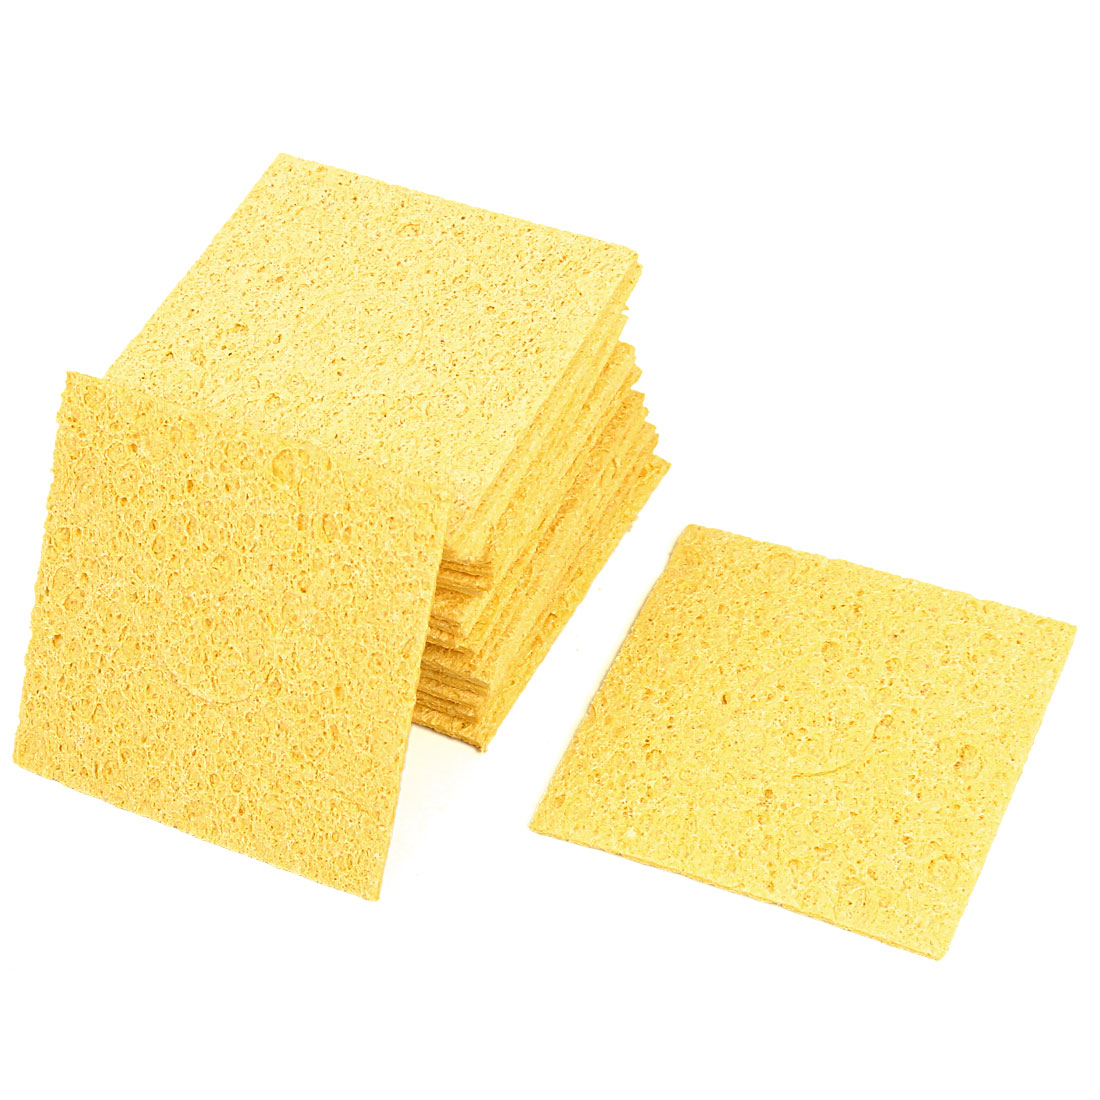 20 Pcs Replacement Soldering Iron Cleaning Sponge 57mm x 57mm x 1mm